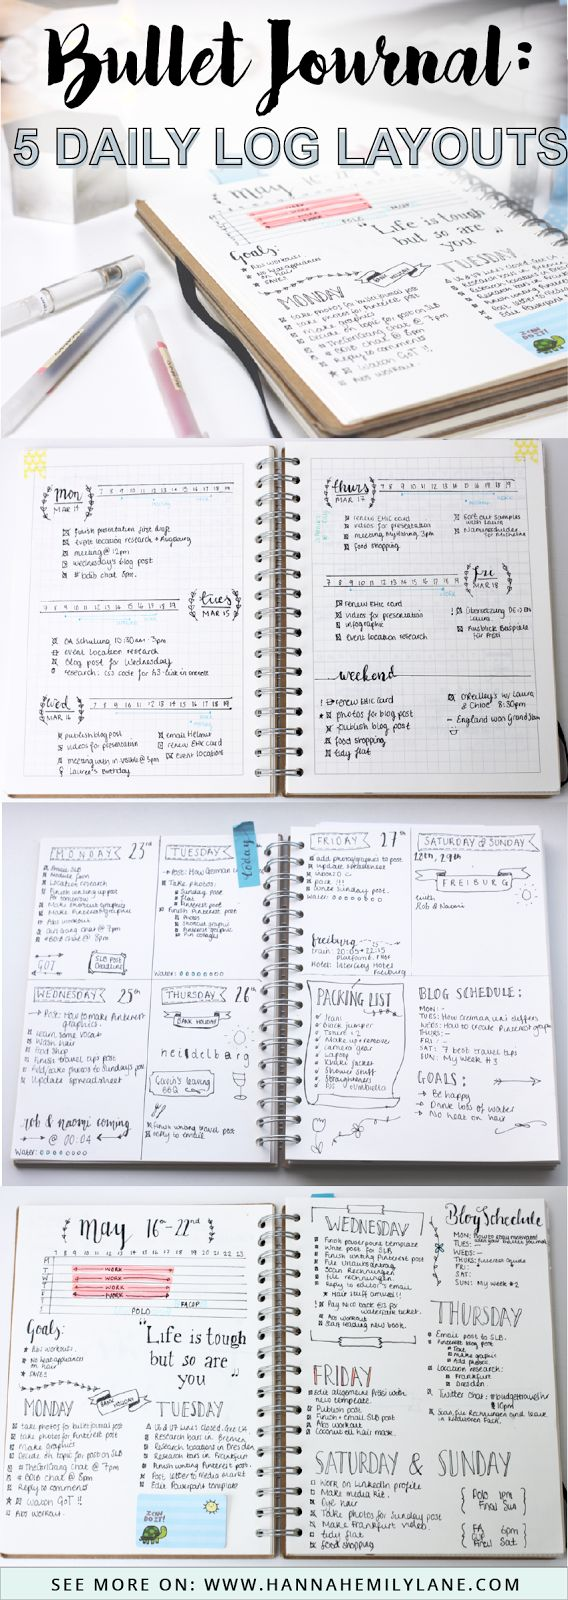 Change up your bullet journal pages with this daily log layout inspiration | www.hannahemilylane.com